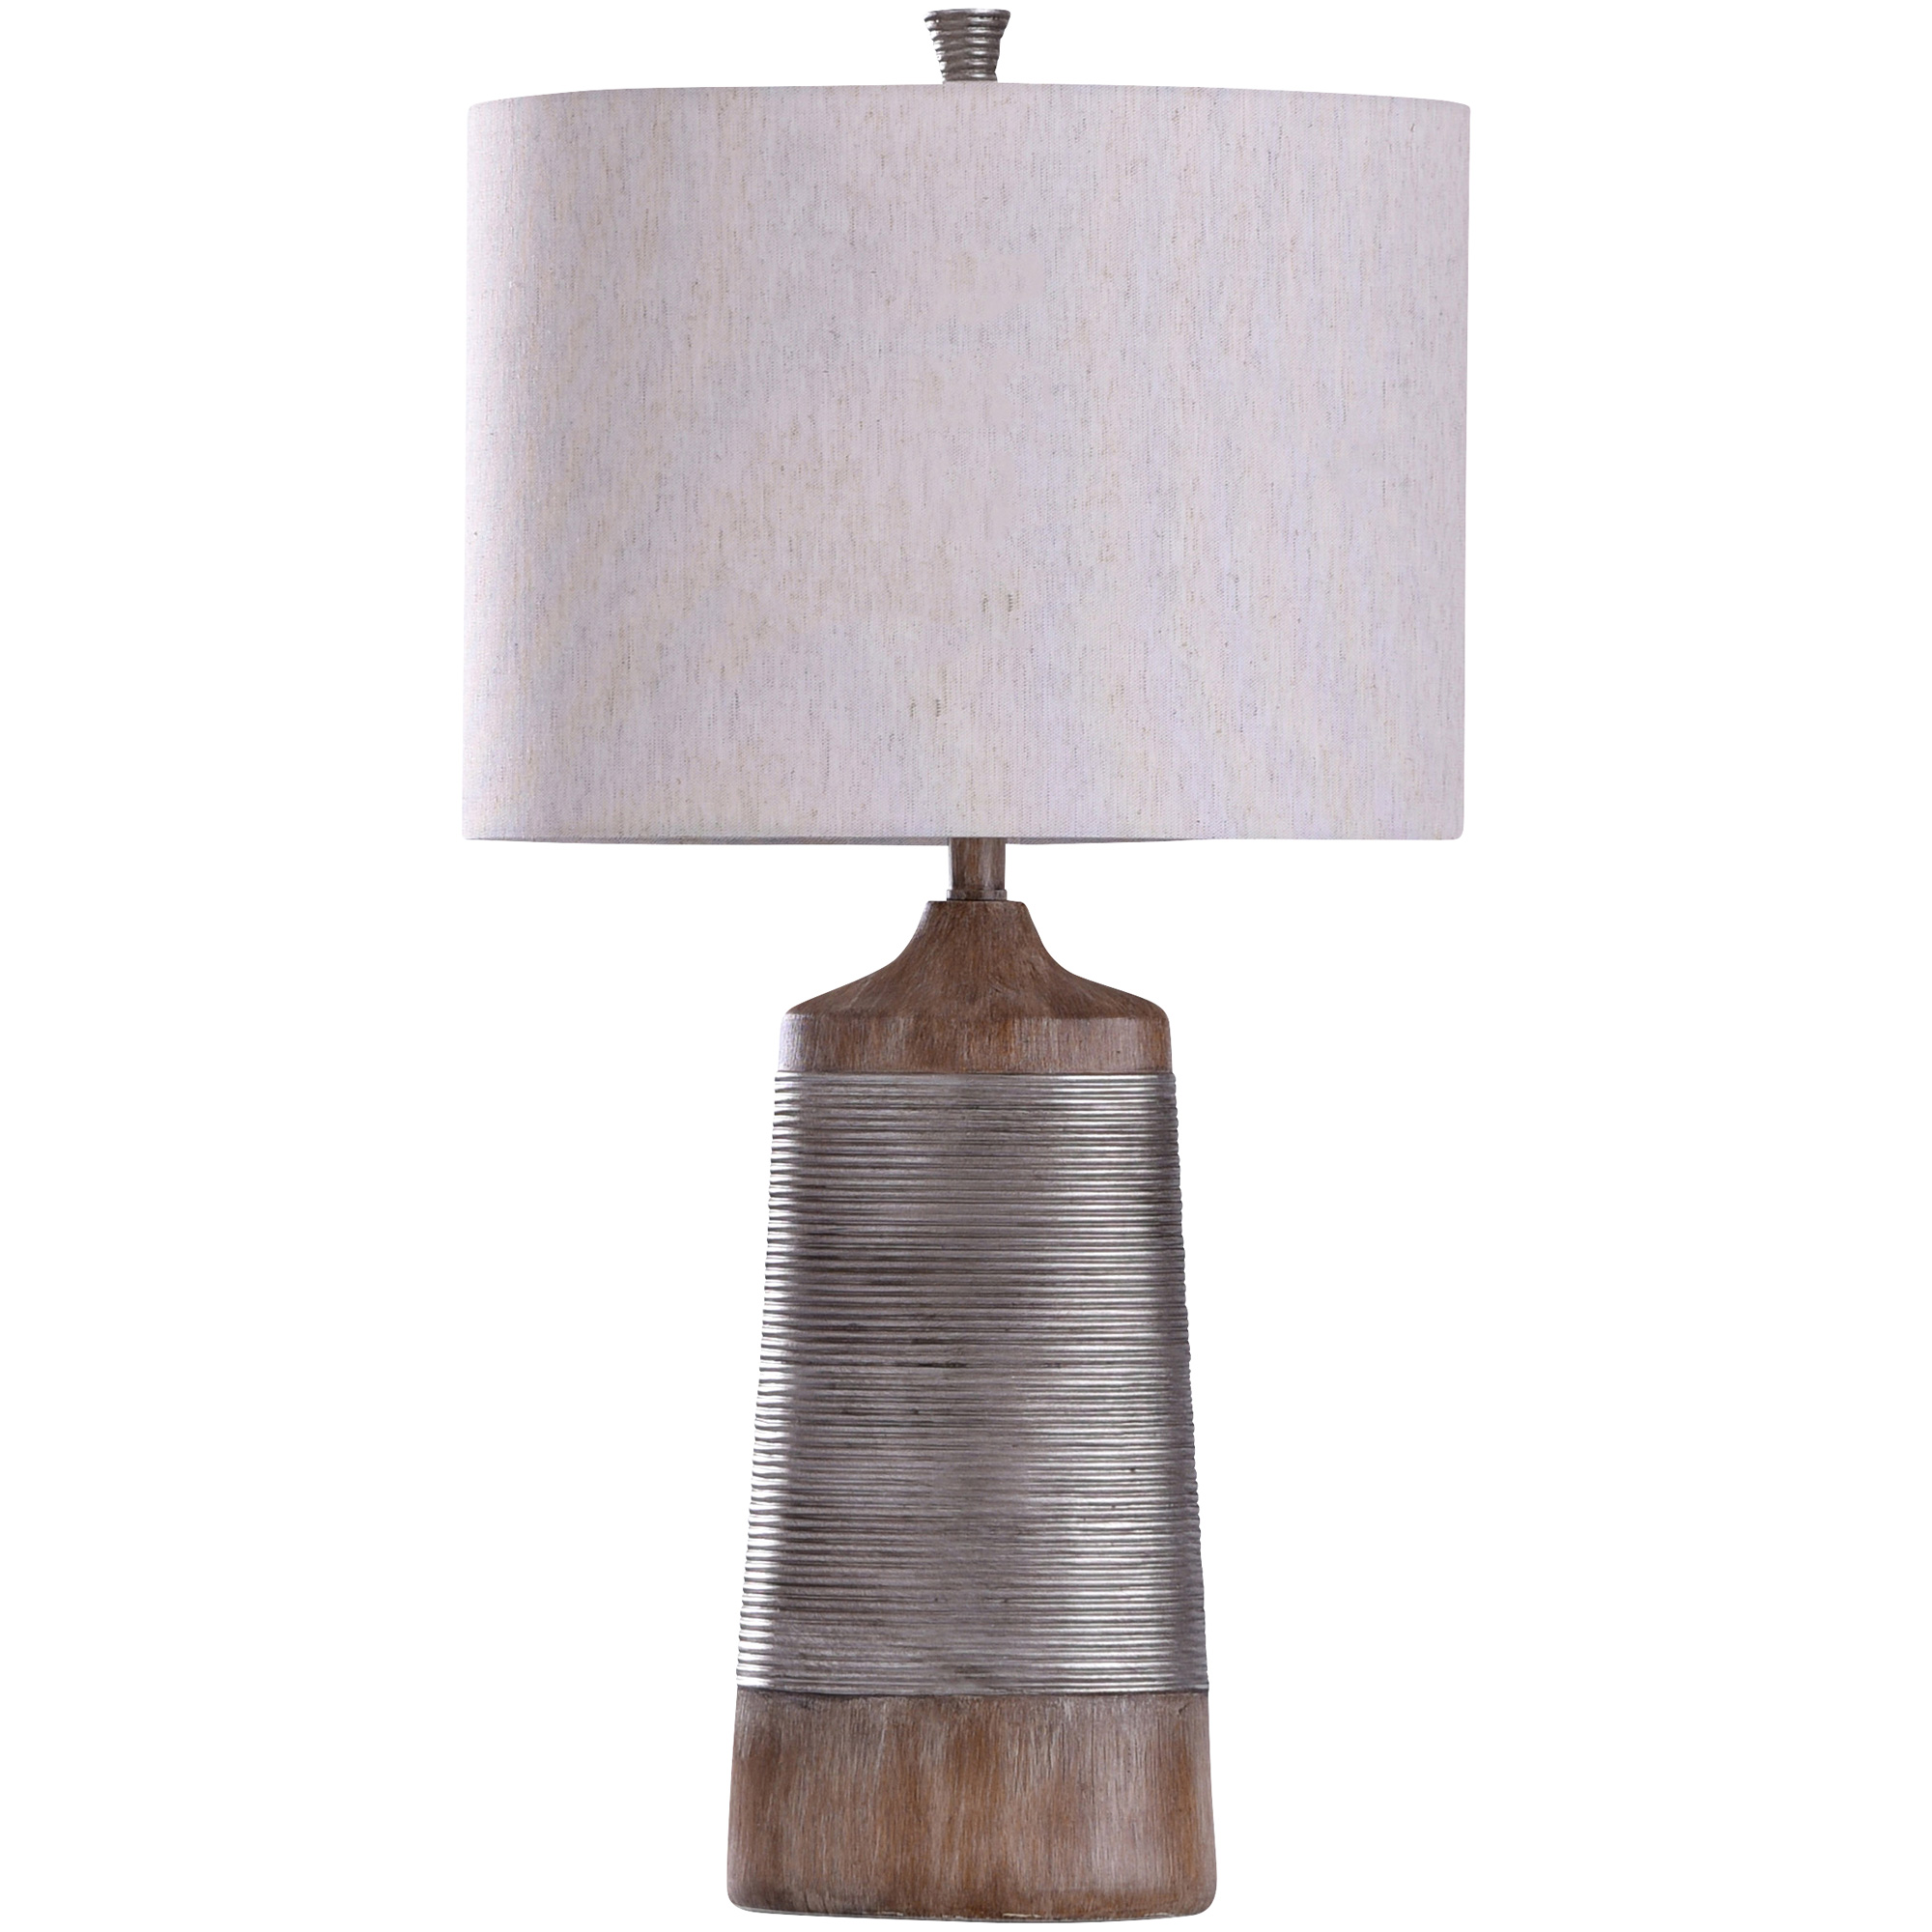 Stylecraft Home Collection | Haverhill Gray Oval Table Lamp